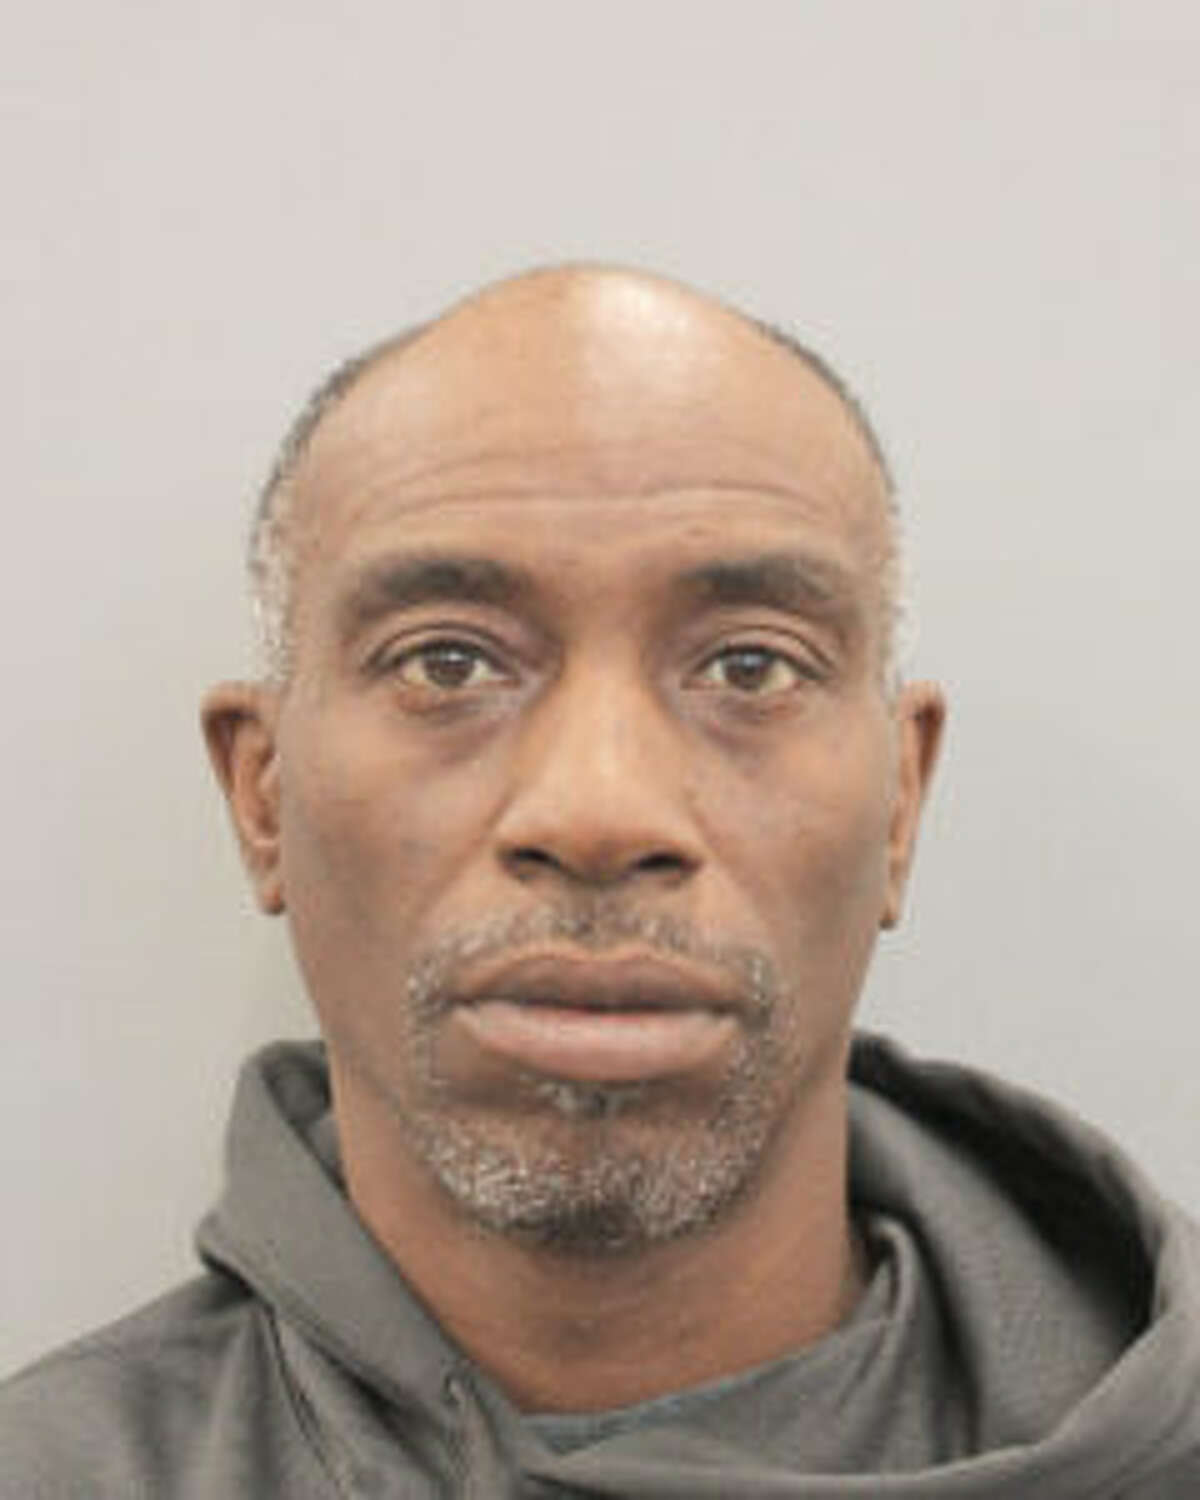 Mello Malone, 25, and Leonard Humphrey, 46, were both arrested and charged with murder for the killing of Keith Davis, 63, the Houston Police Department announced Tuesday. Malone told police that the killing happened because Davis owed $50, according to an affidavit of probable cause.